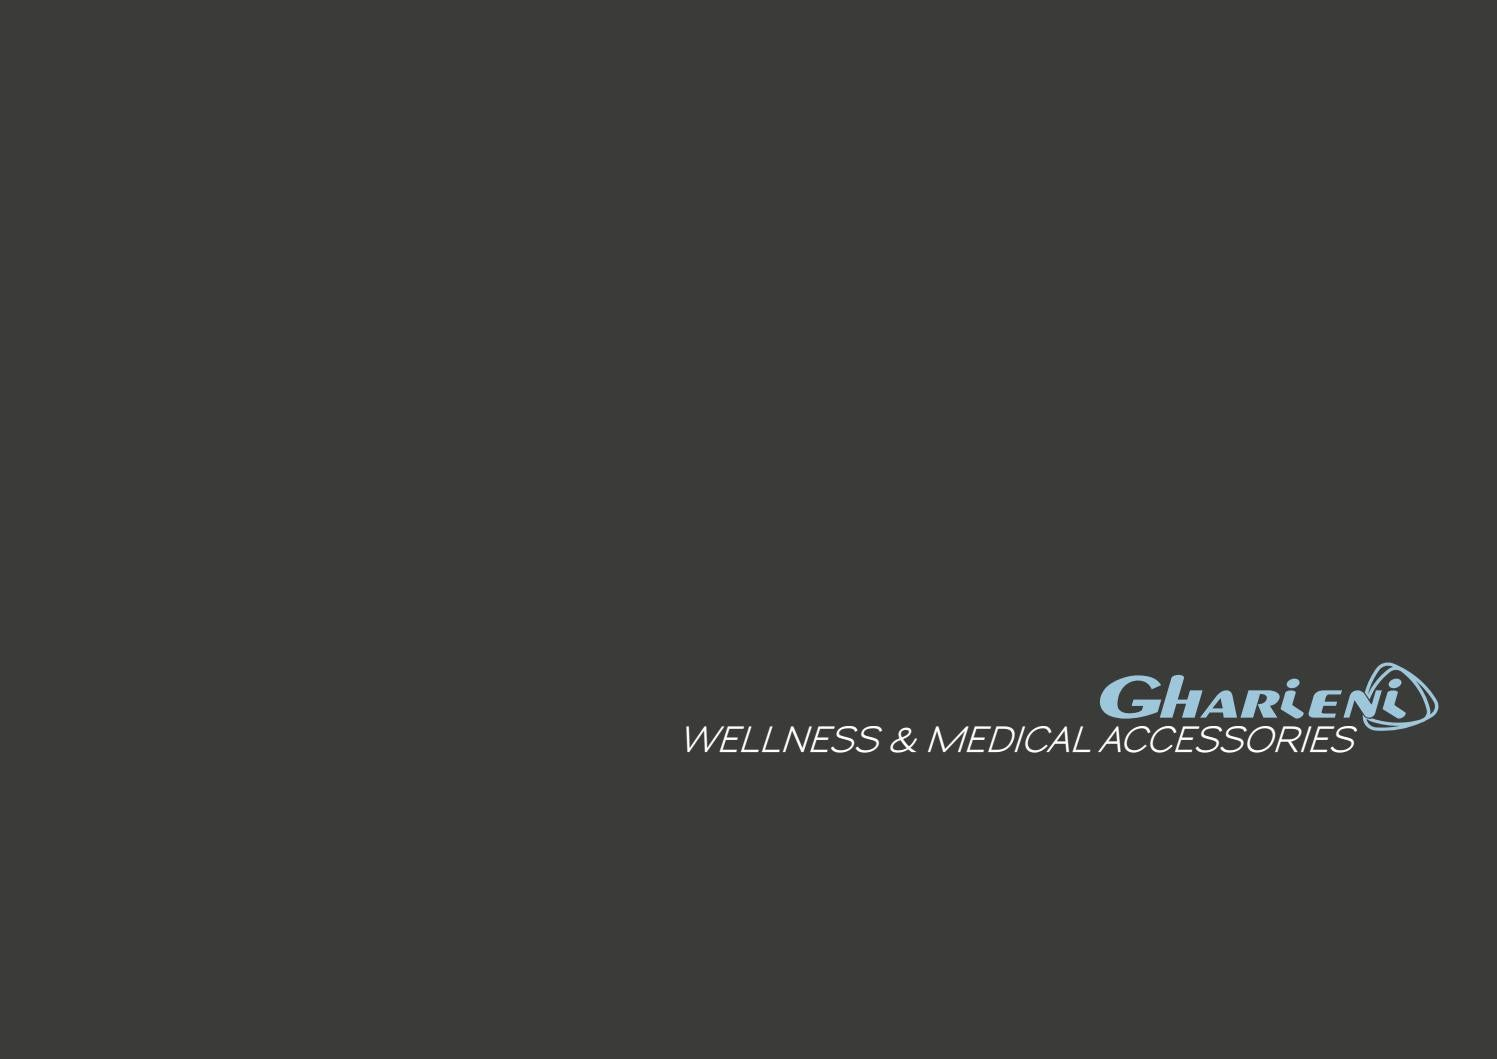 Gharieni wellness & medical accessories by CARTECO DESIGN